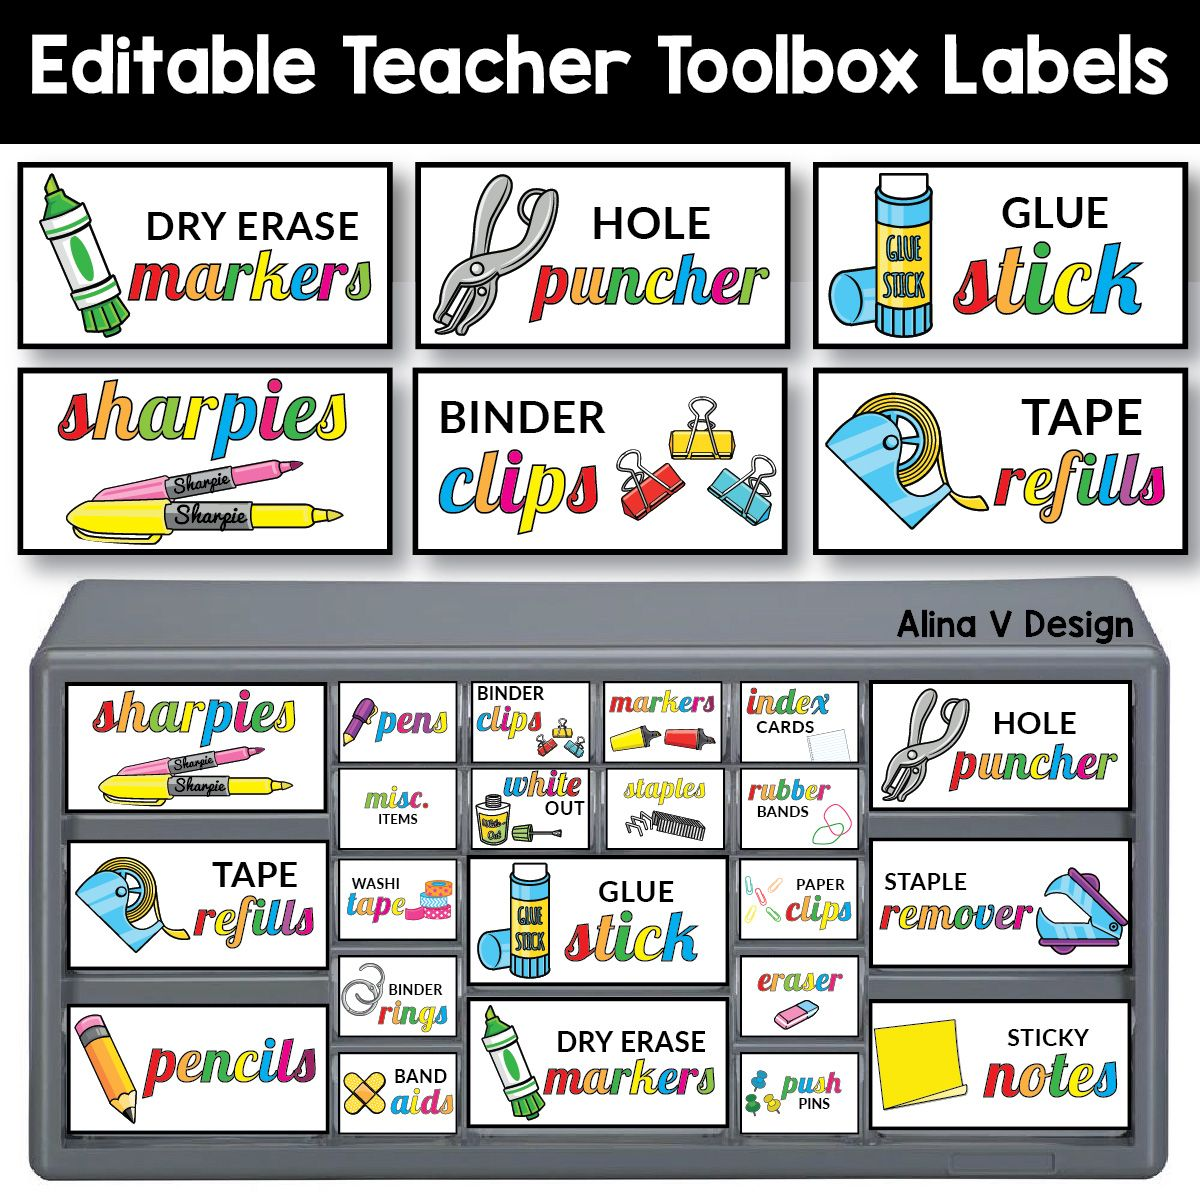 Teacher Toolbox Labels Teacher Toolbox Labels Editable Teacher Toolbox Labels 22 Teacher To Teacher Toolbox Labels Classroom Supplies Labels Teacher Toolbox